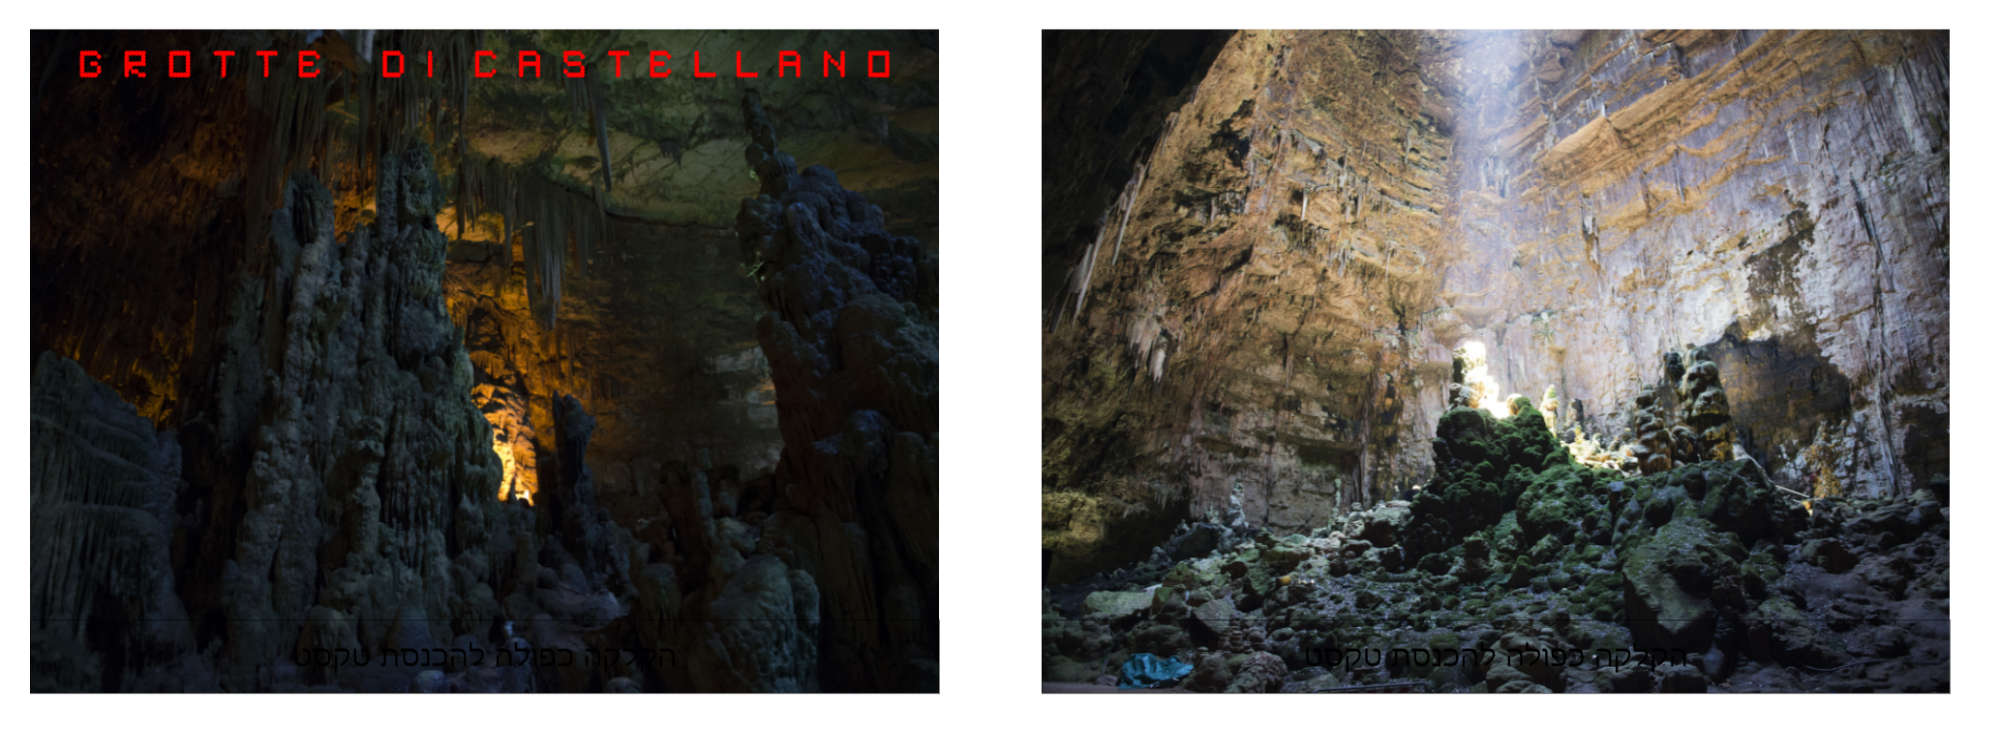 Puglia Album - Pages 26-27: Inside the cave of Castellano